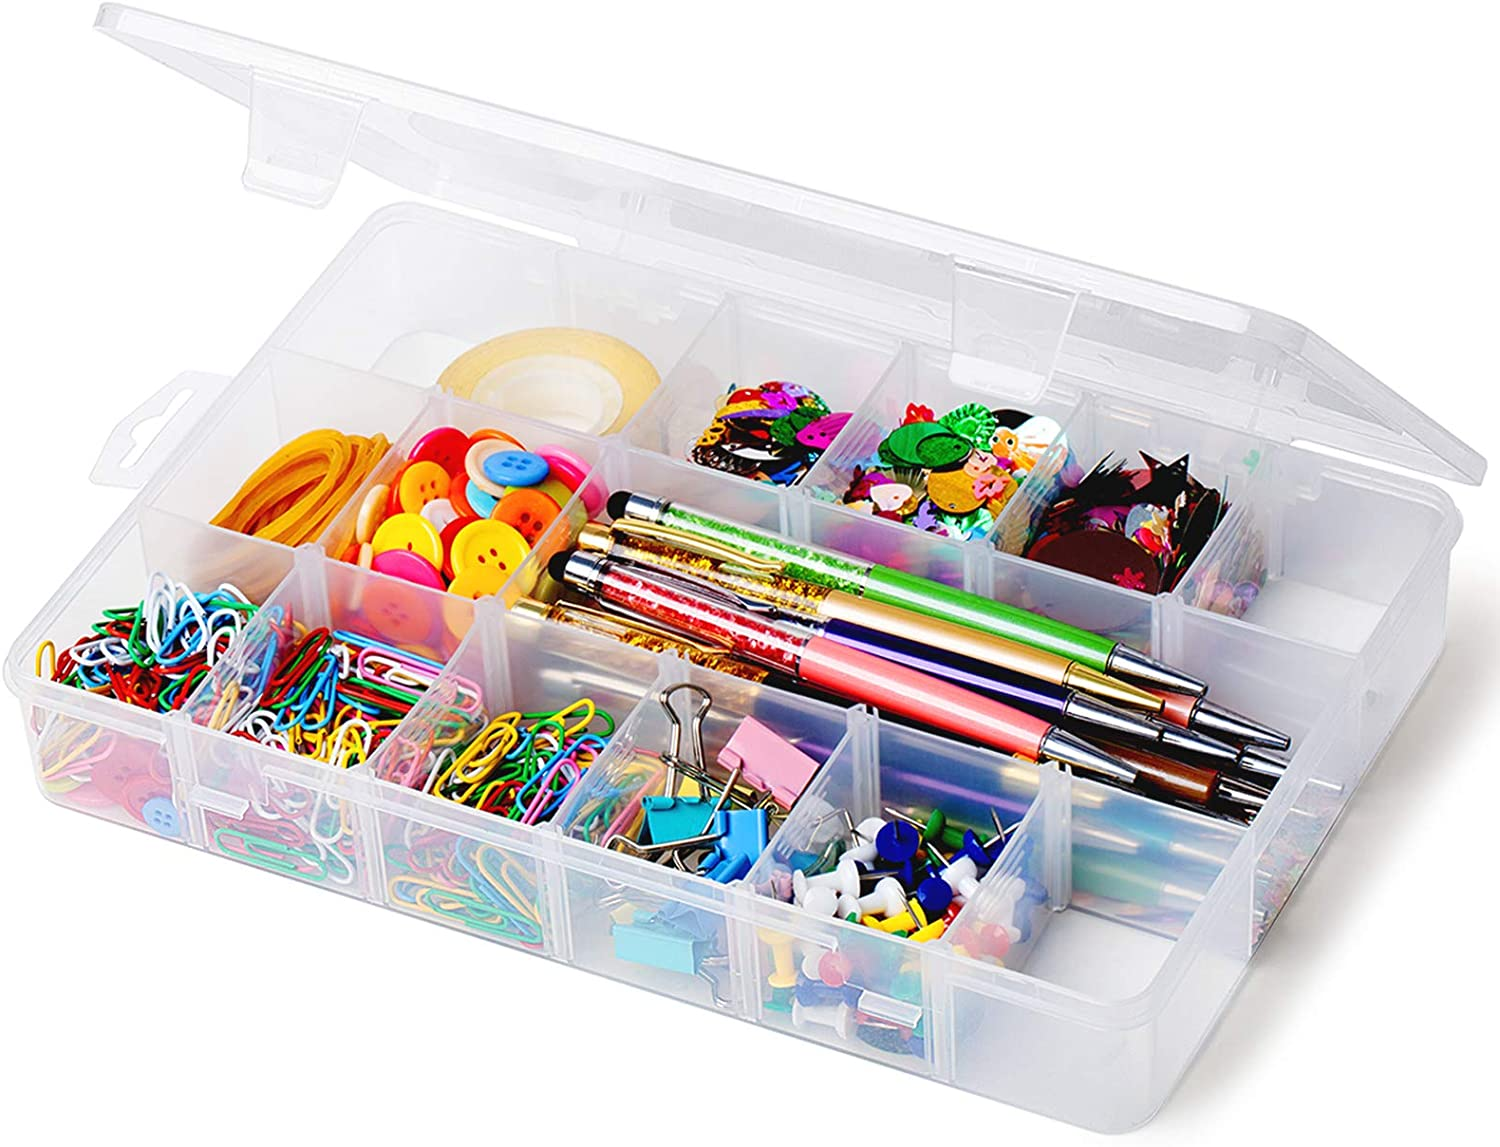 iBune 18 Grids Plastic Compartment Container, Bead Storage Organizer Box Case with Adjustable Removable Dividers for Jewelry Craft Tackles Tools, Each Grid Size 1.7 x 2.2 x 1.5 in (White)